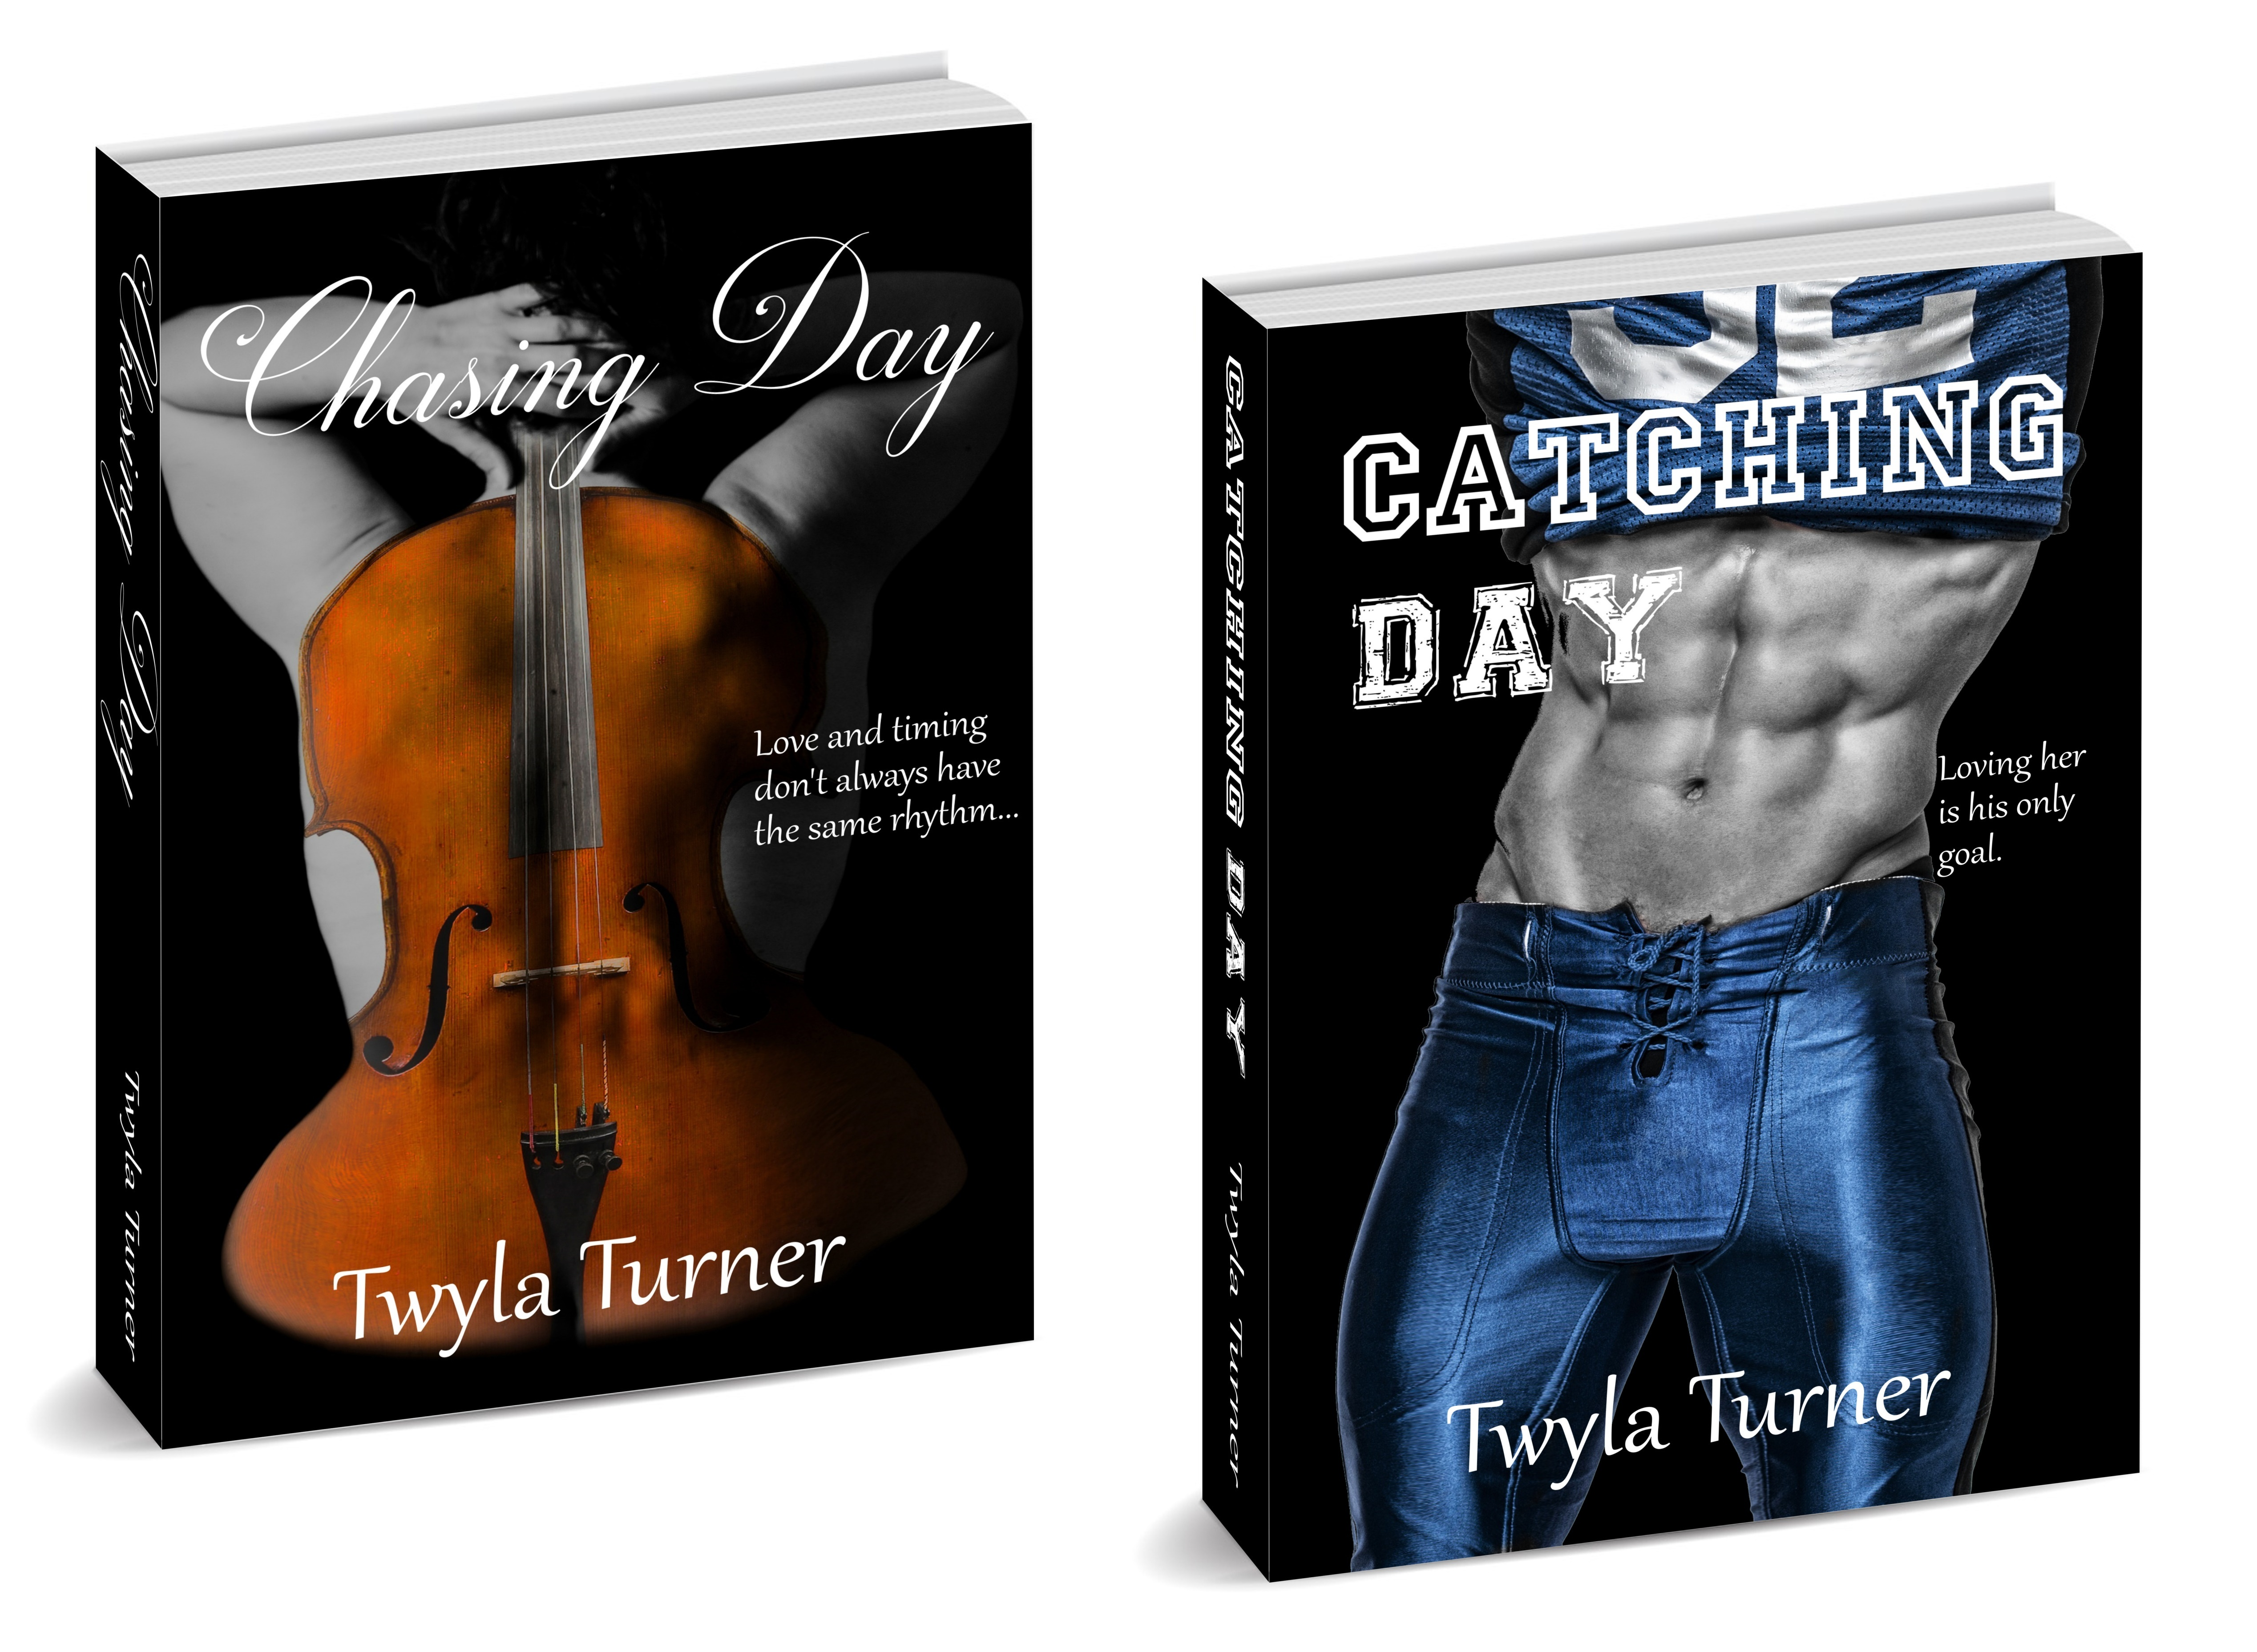 Chasing Day Series (Chasing Day, #1) (Catching Day, #2) Twyla Turner